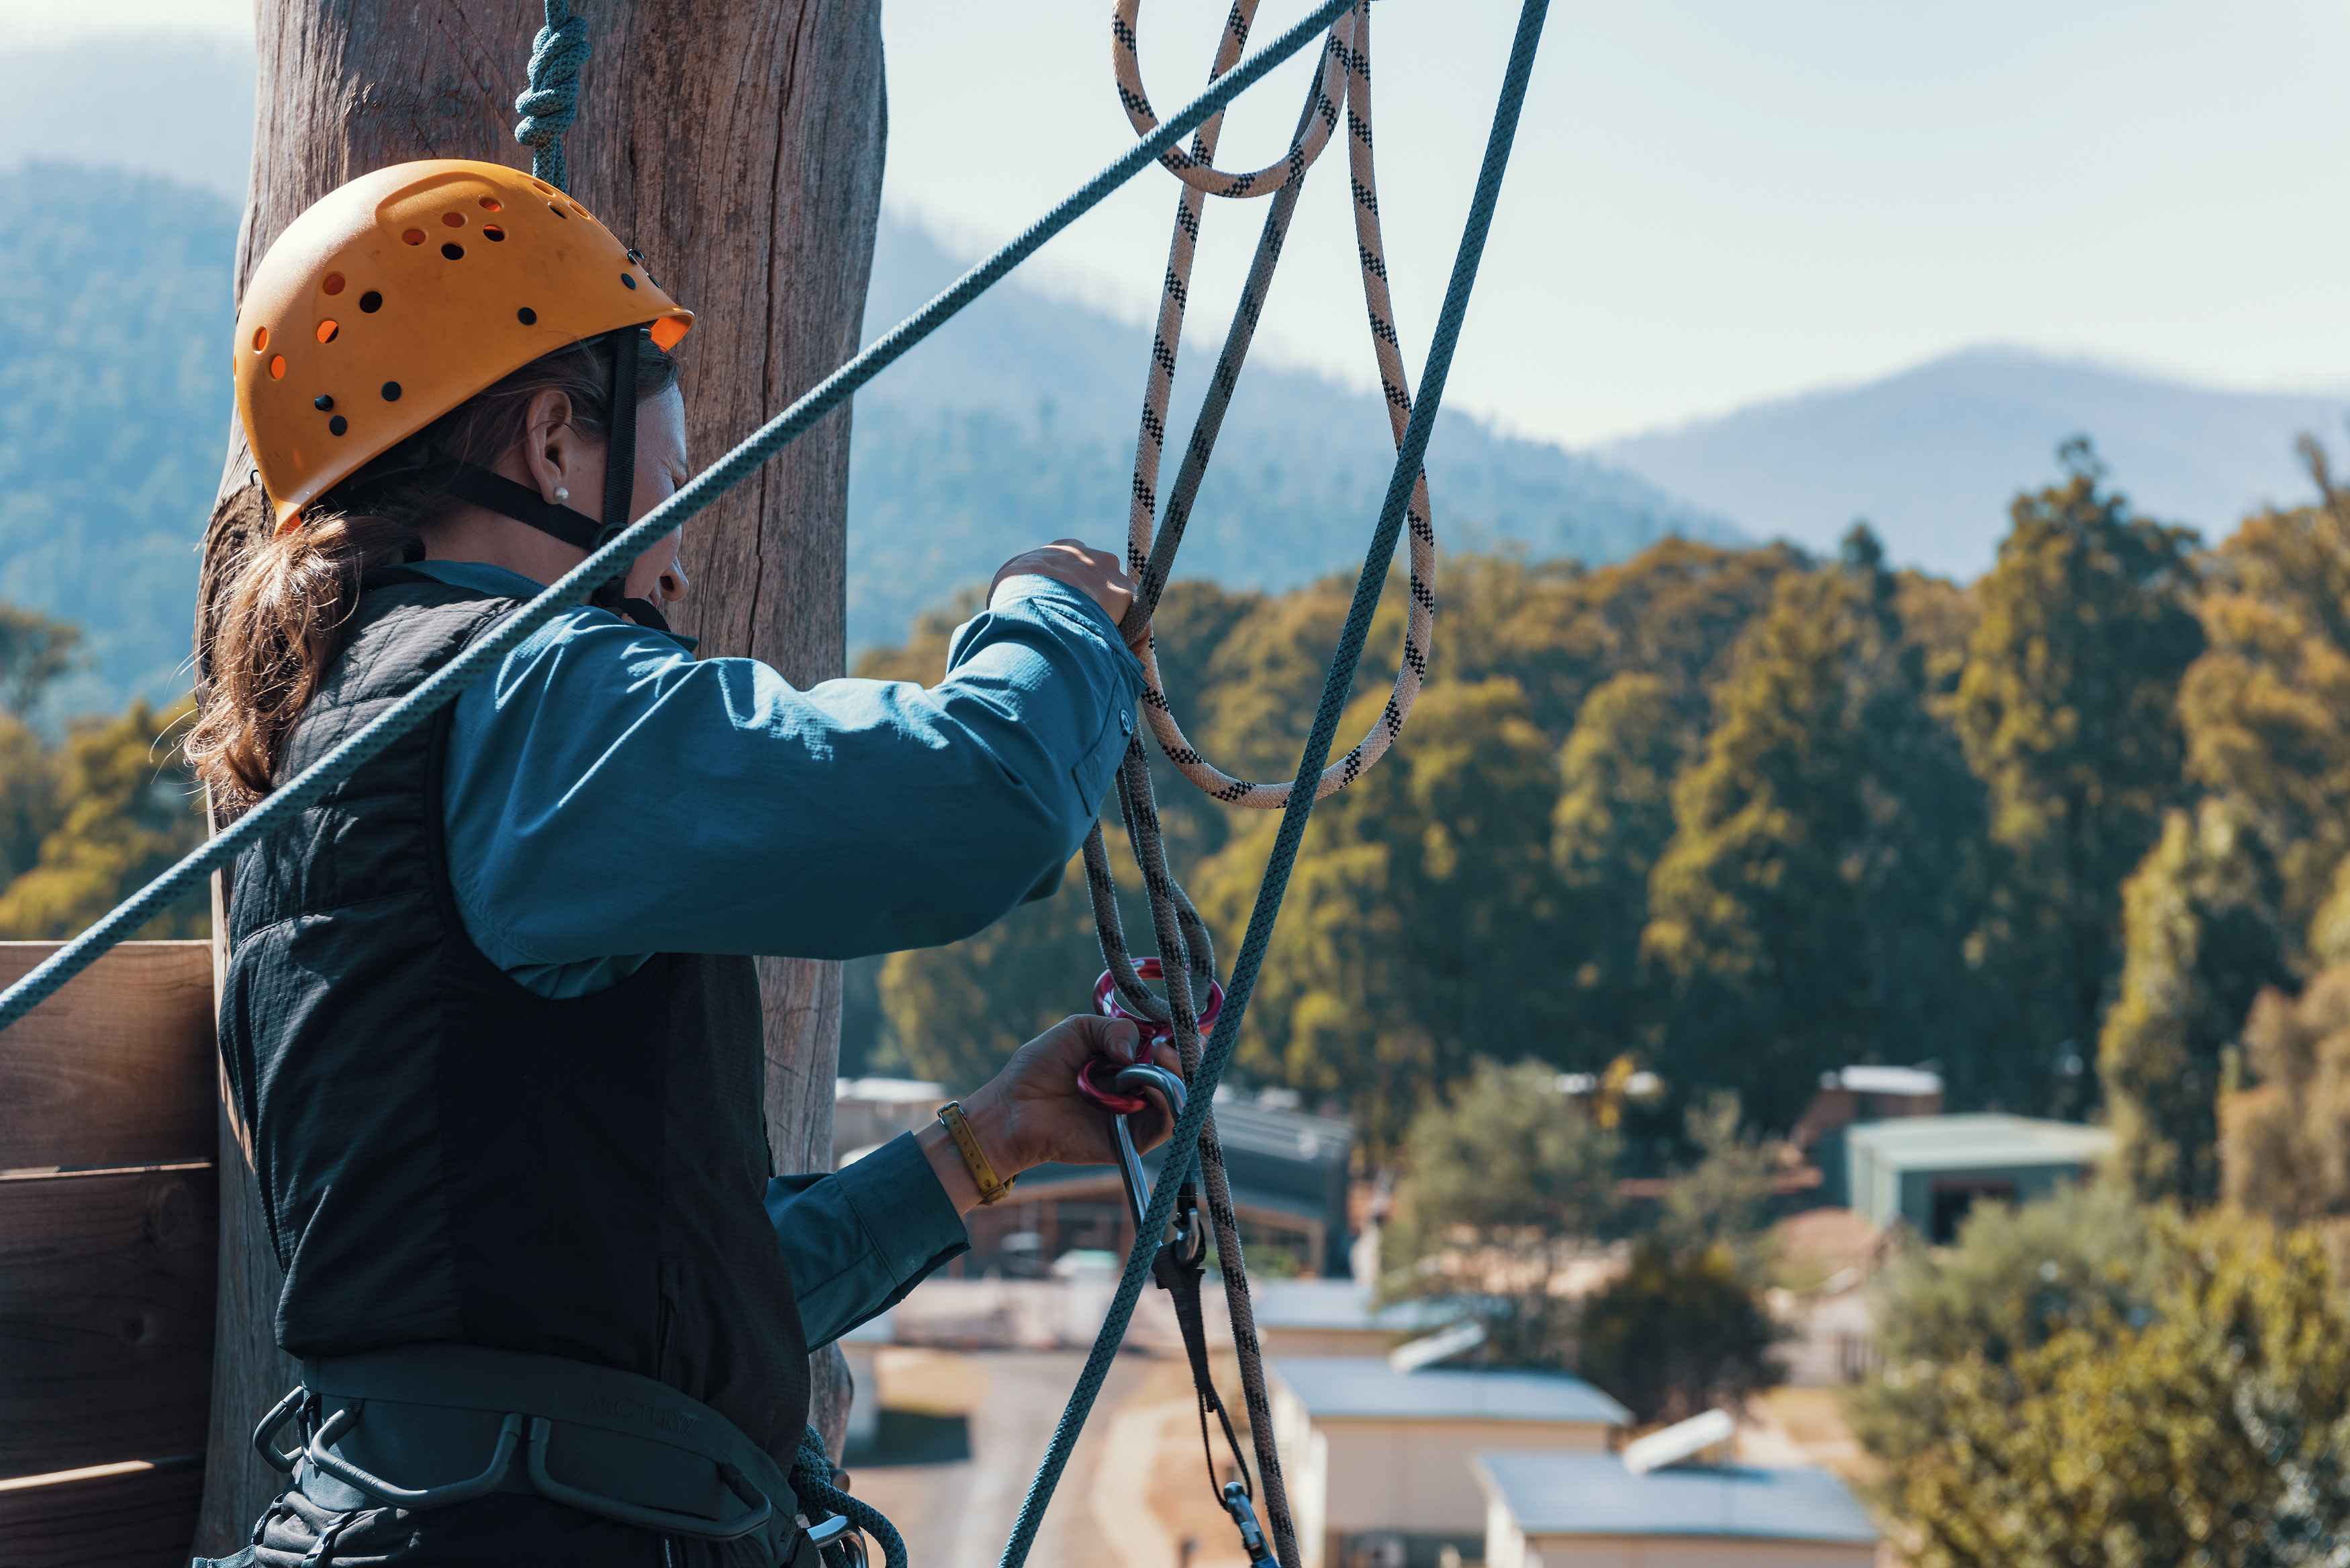 INCREASE STUDENT WELLBEING WITH OUTDOOR EDUCATION INCURSIONS